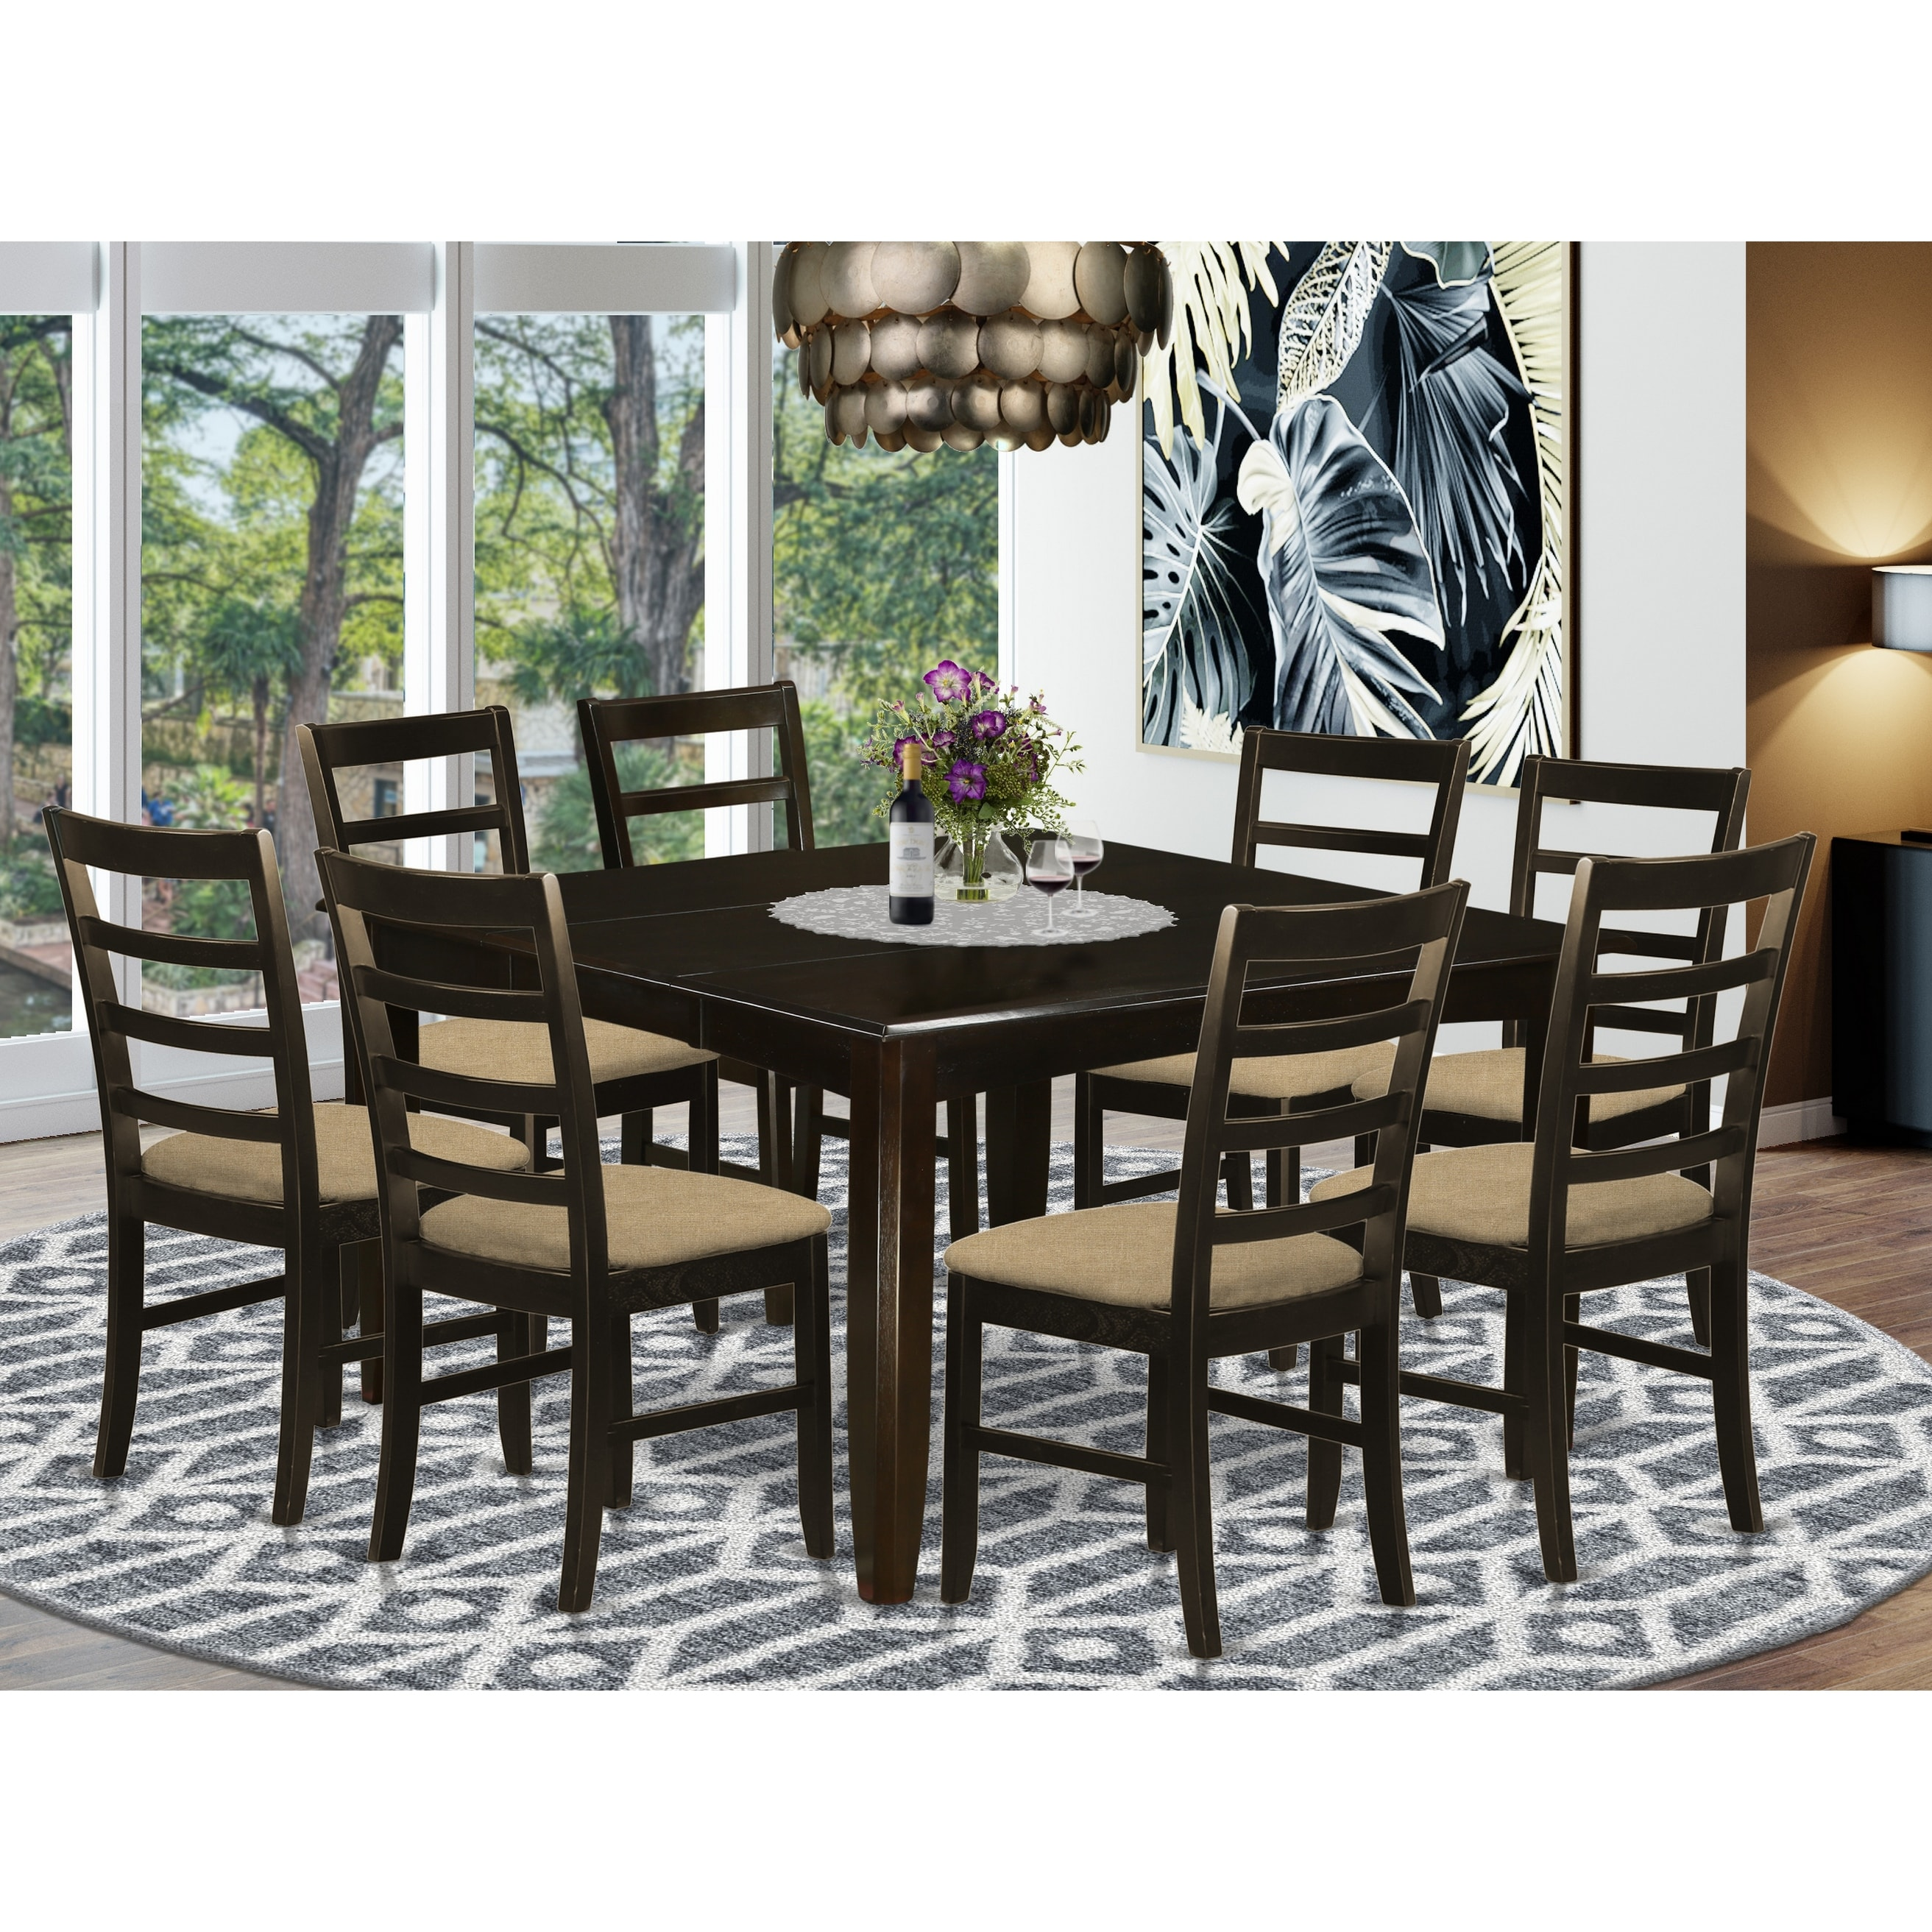 9 Pc Dining Room Set Square Table And 8 Chairs In Cappuccino Finish Overstock 17676459